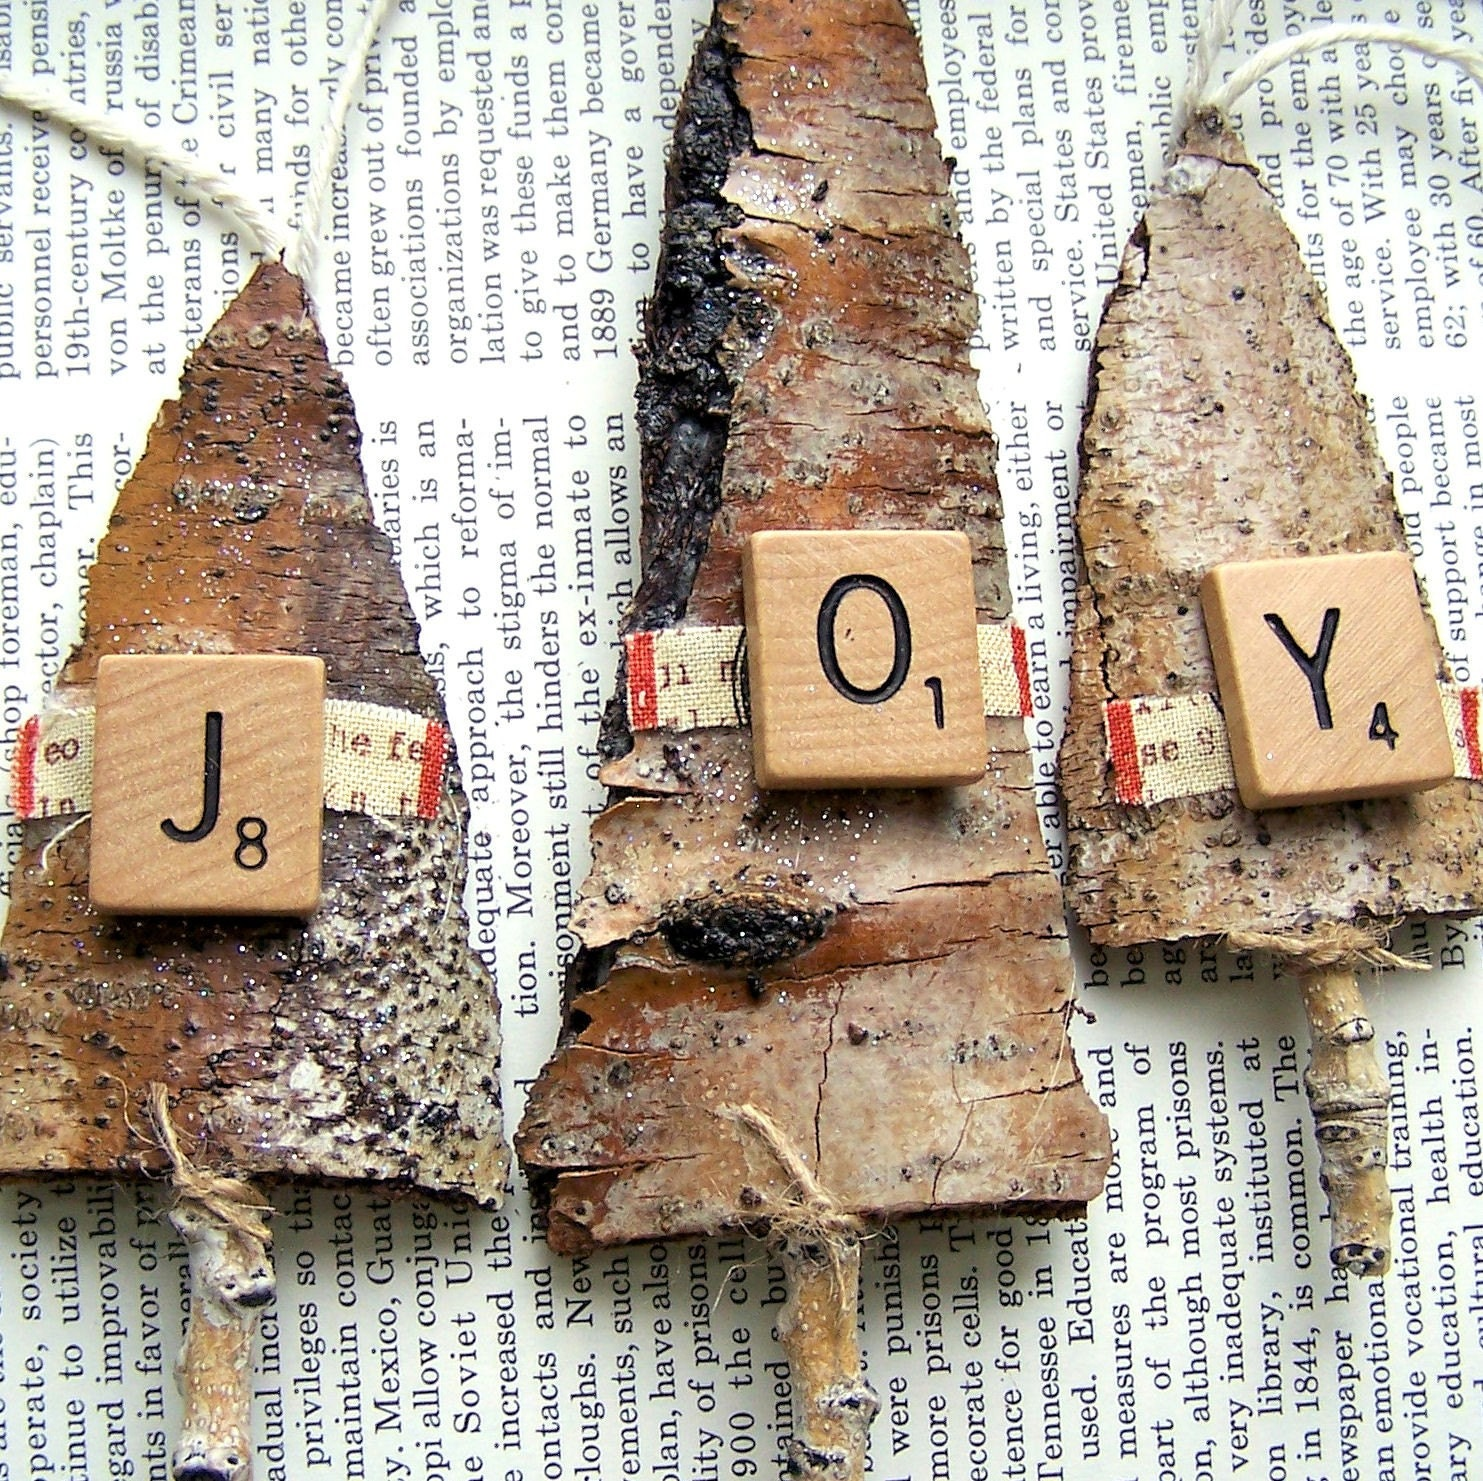 Rustic JOY Tree Bark Christmas ORNAMENTS By Vintagegreenlimited